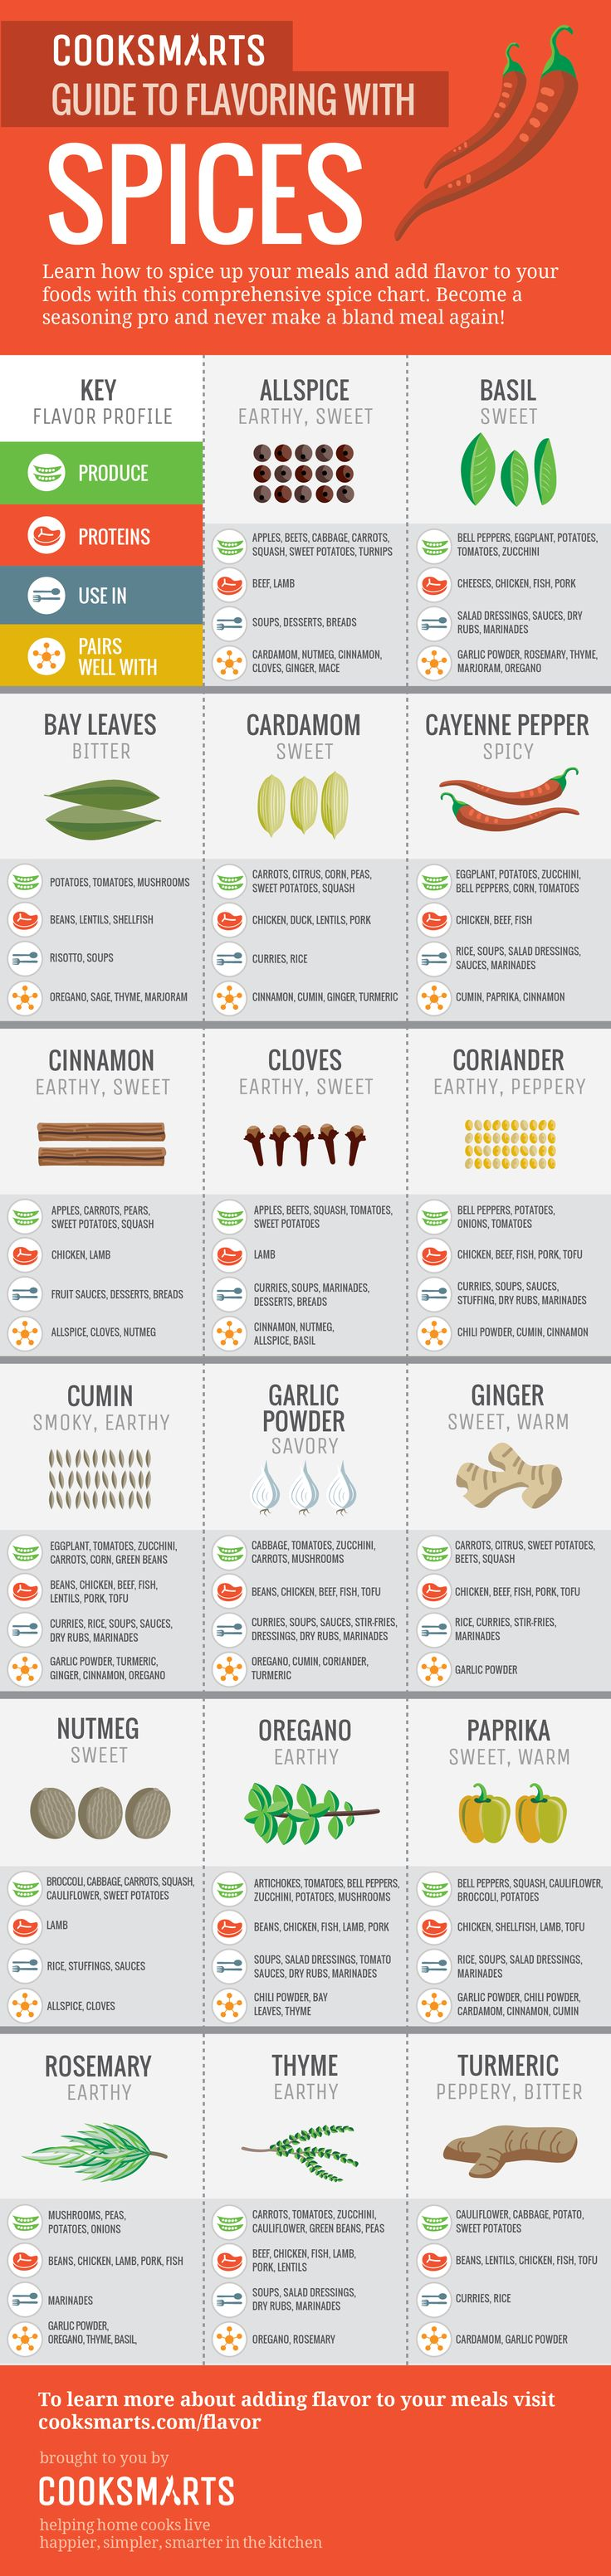 Guide to Flavoring with Spices via @cooksmarts #infographic #spices #flavor